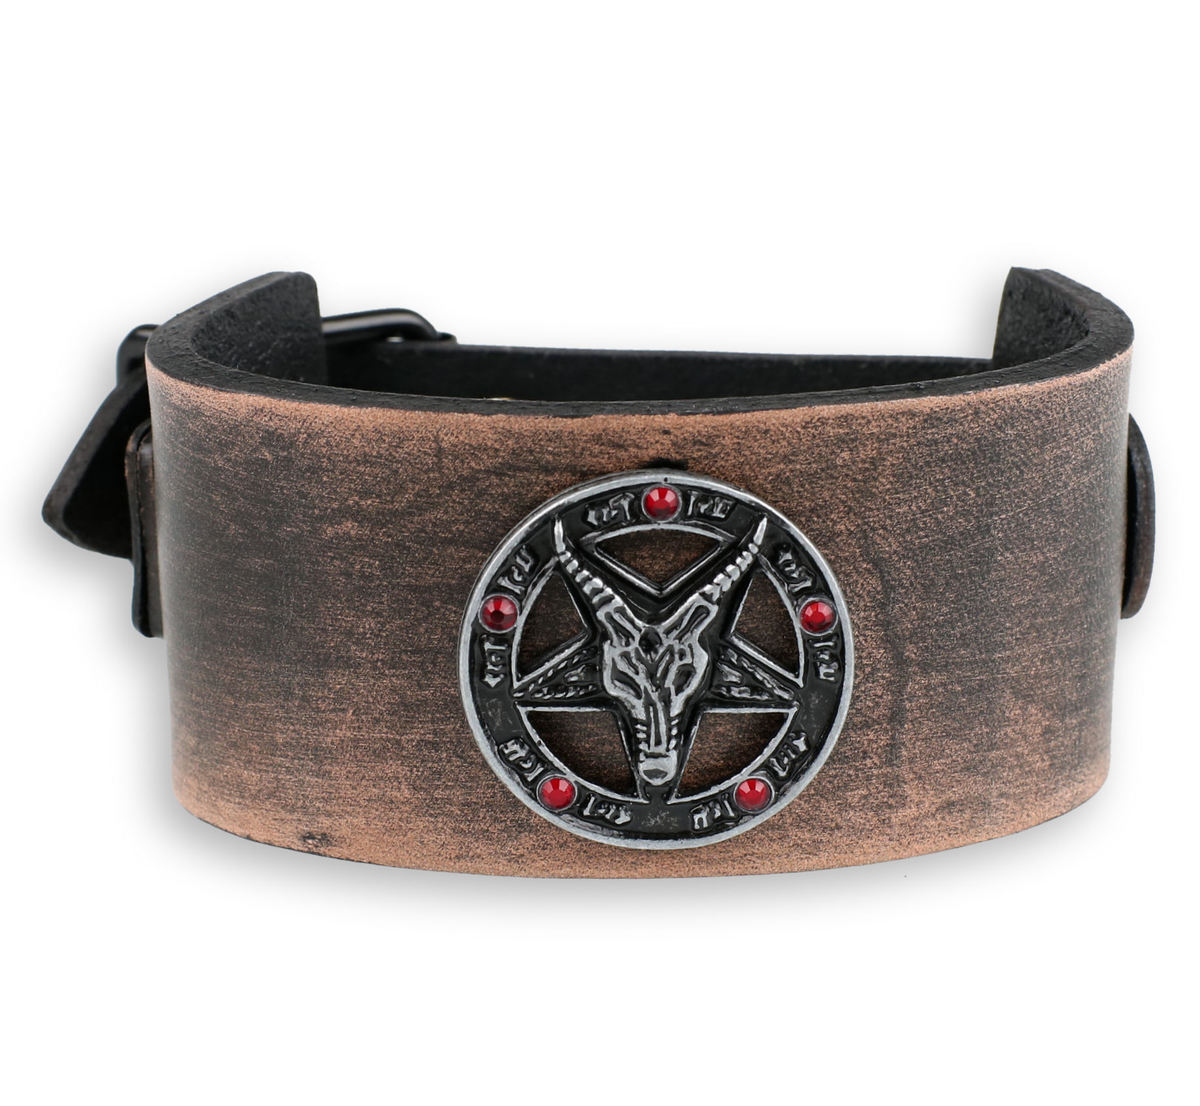 náramek Baphomet - brown - krystal red - LSF1 62-a